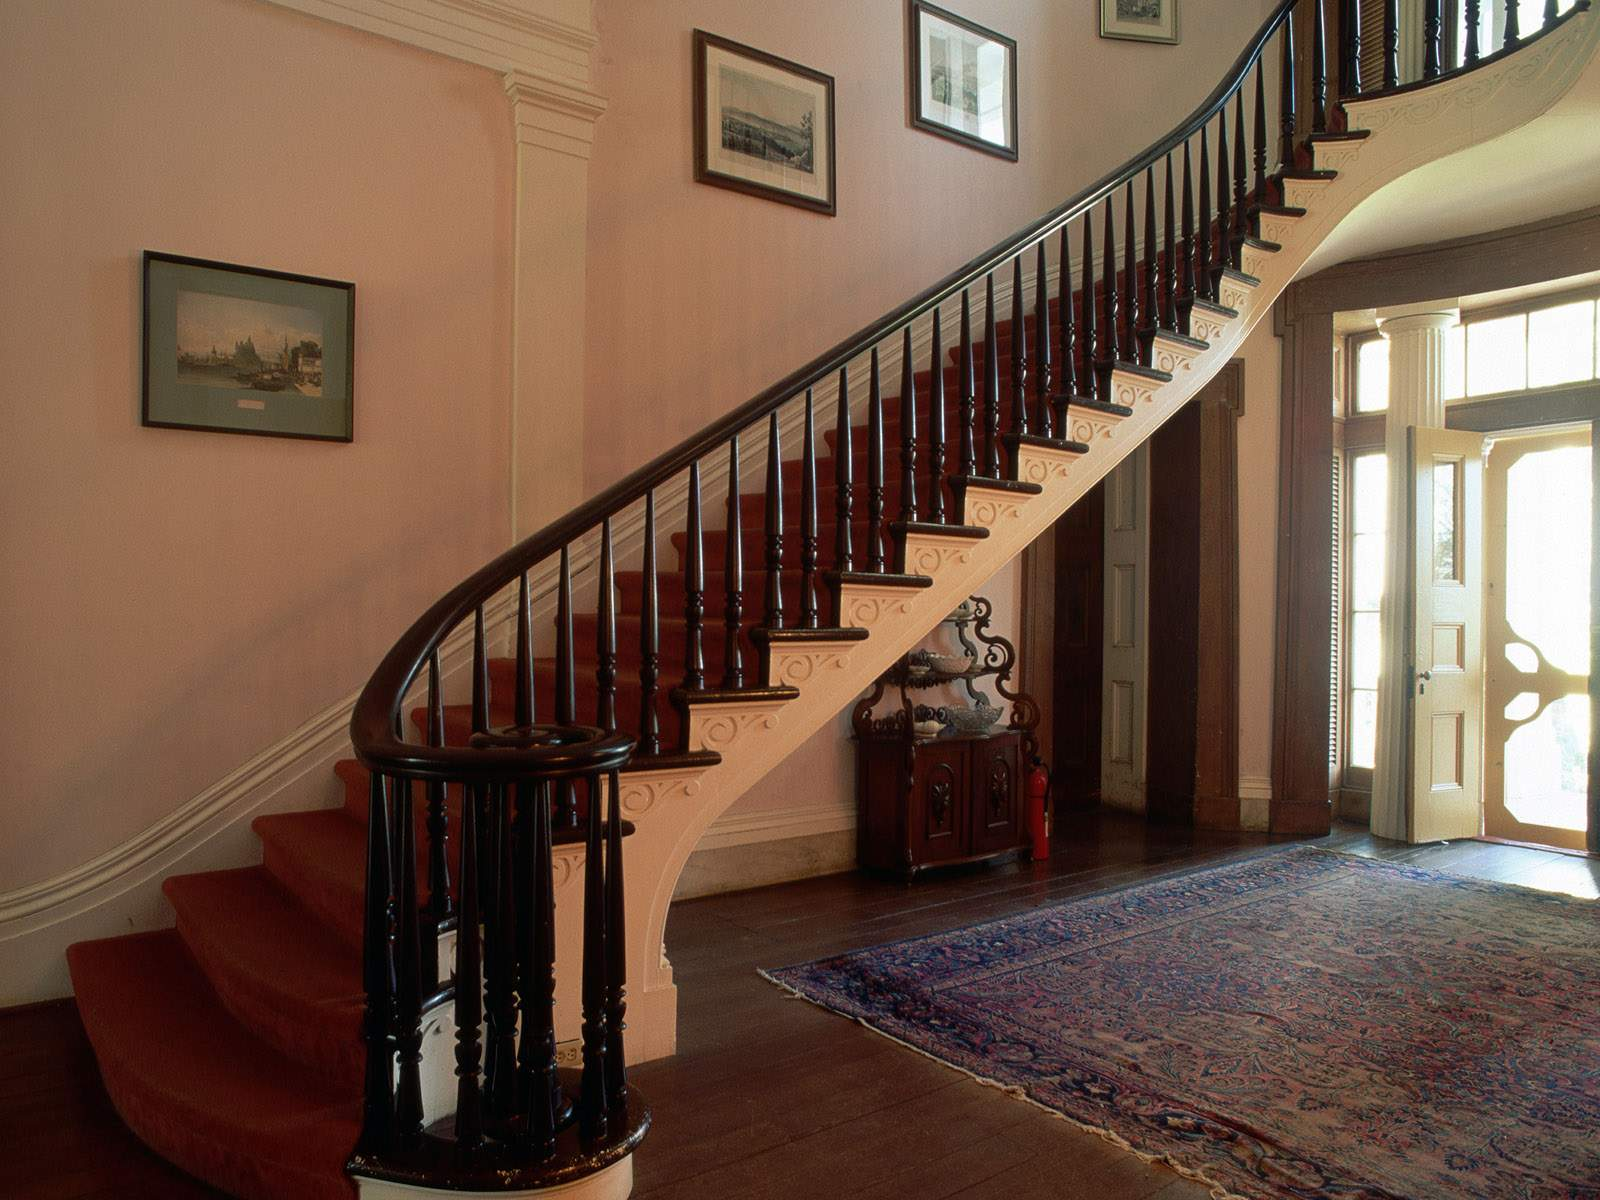 Gorgeous Wooden Handrail For Stairs Restaurare Monumente Istorice Reconditionare Mobila Lemn